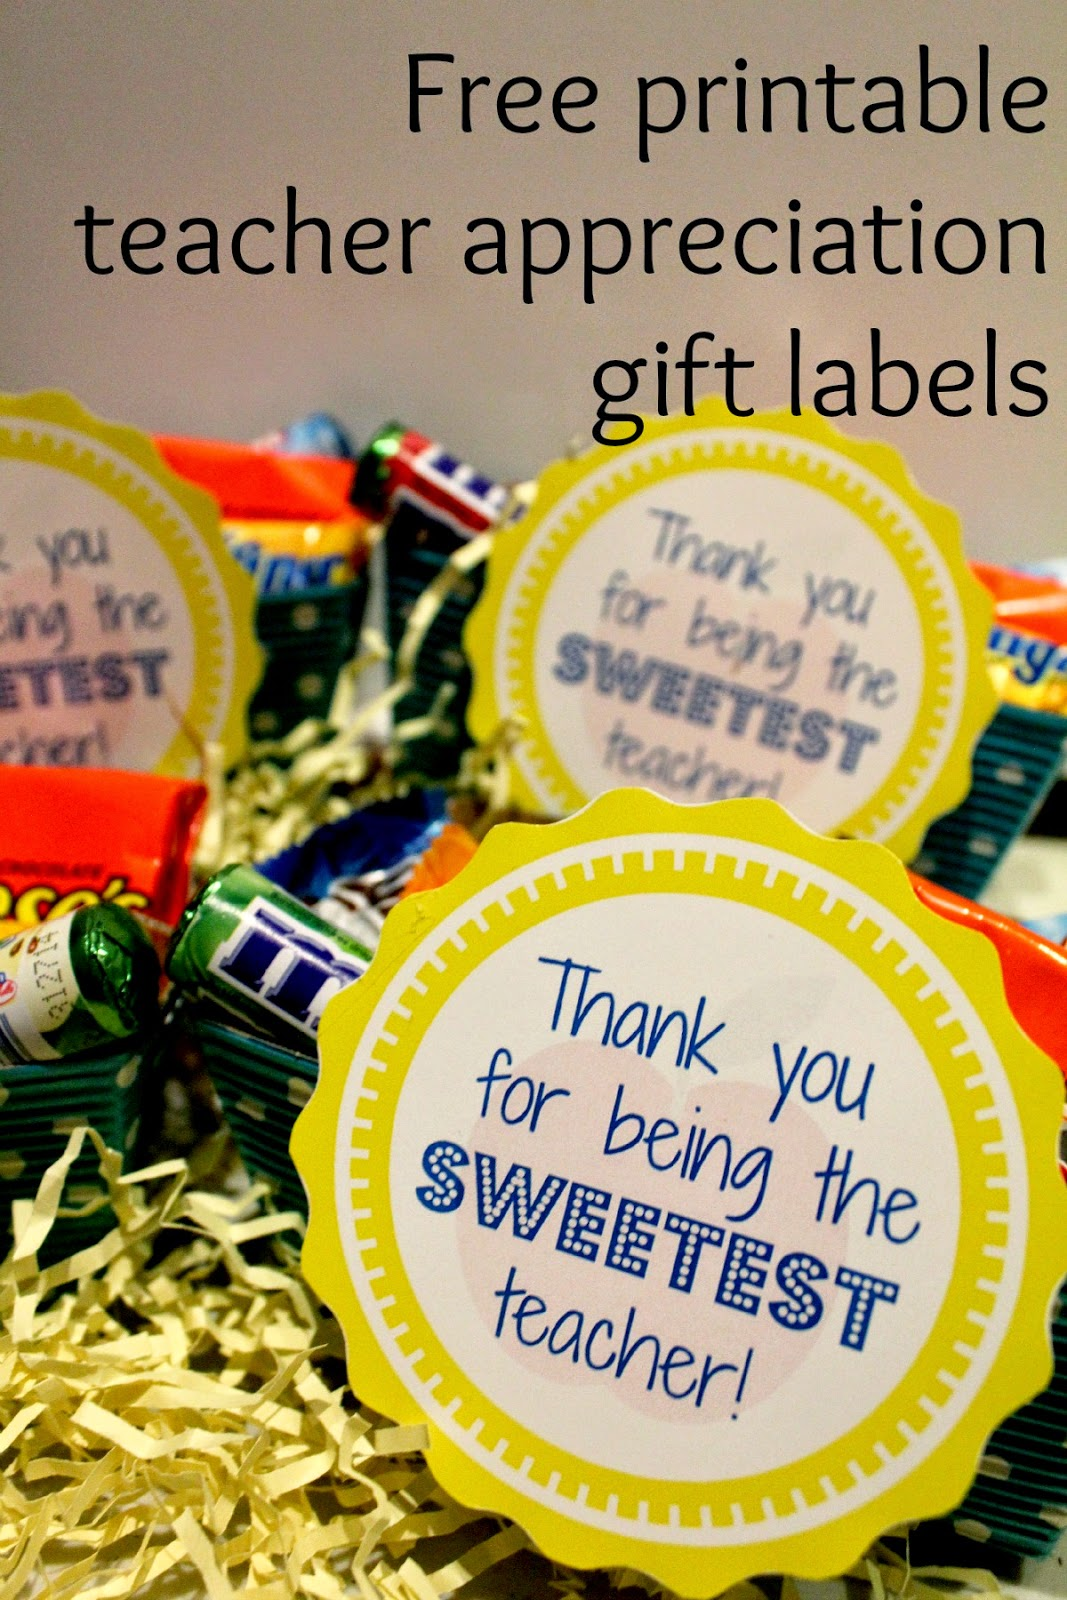 Free Printable labels for teacher appreciation gifts